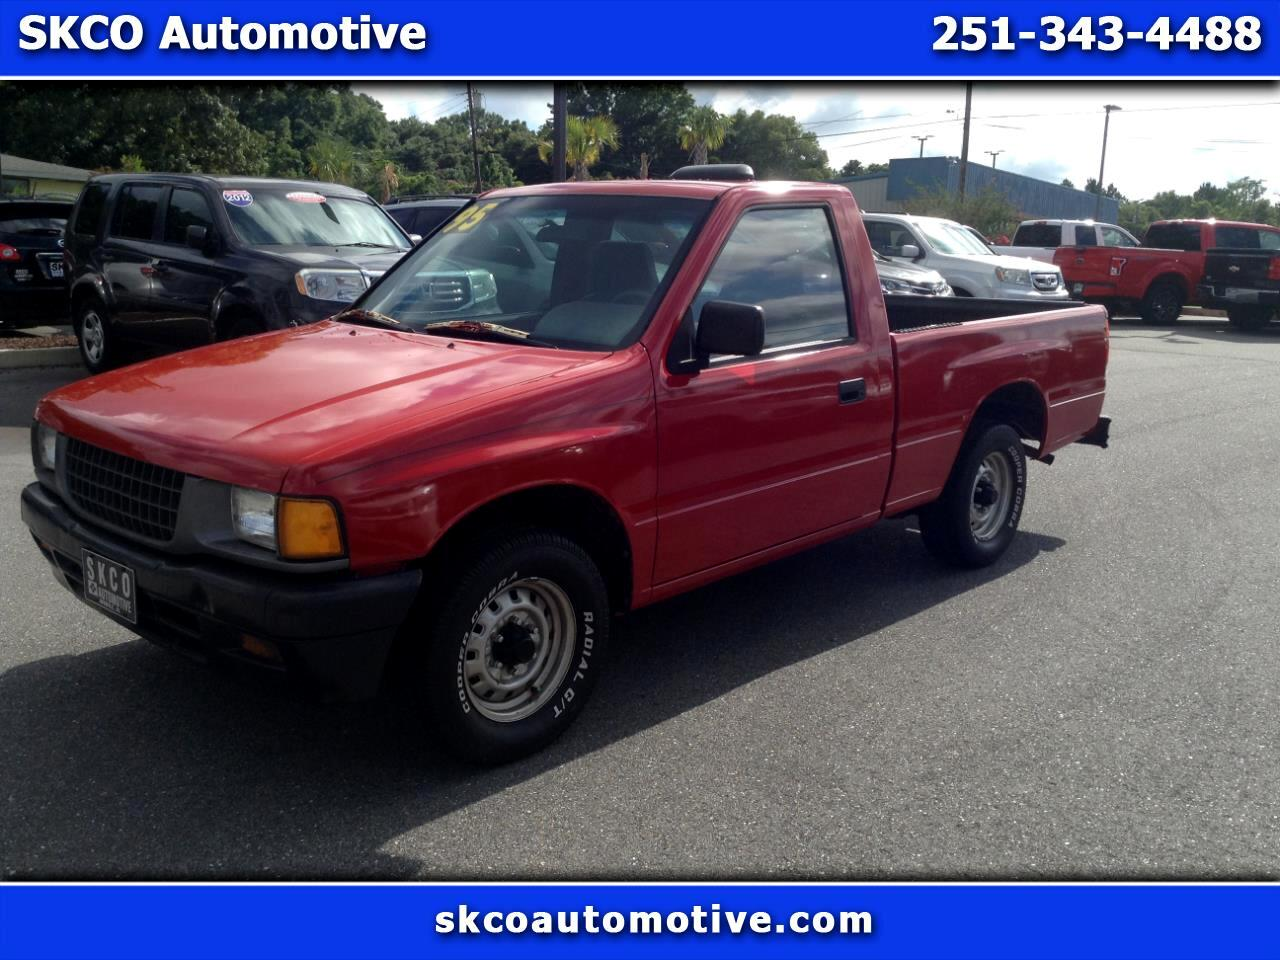 1995 Isuzu Pickup Std Bed S 2WD